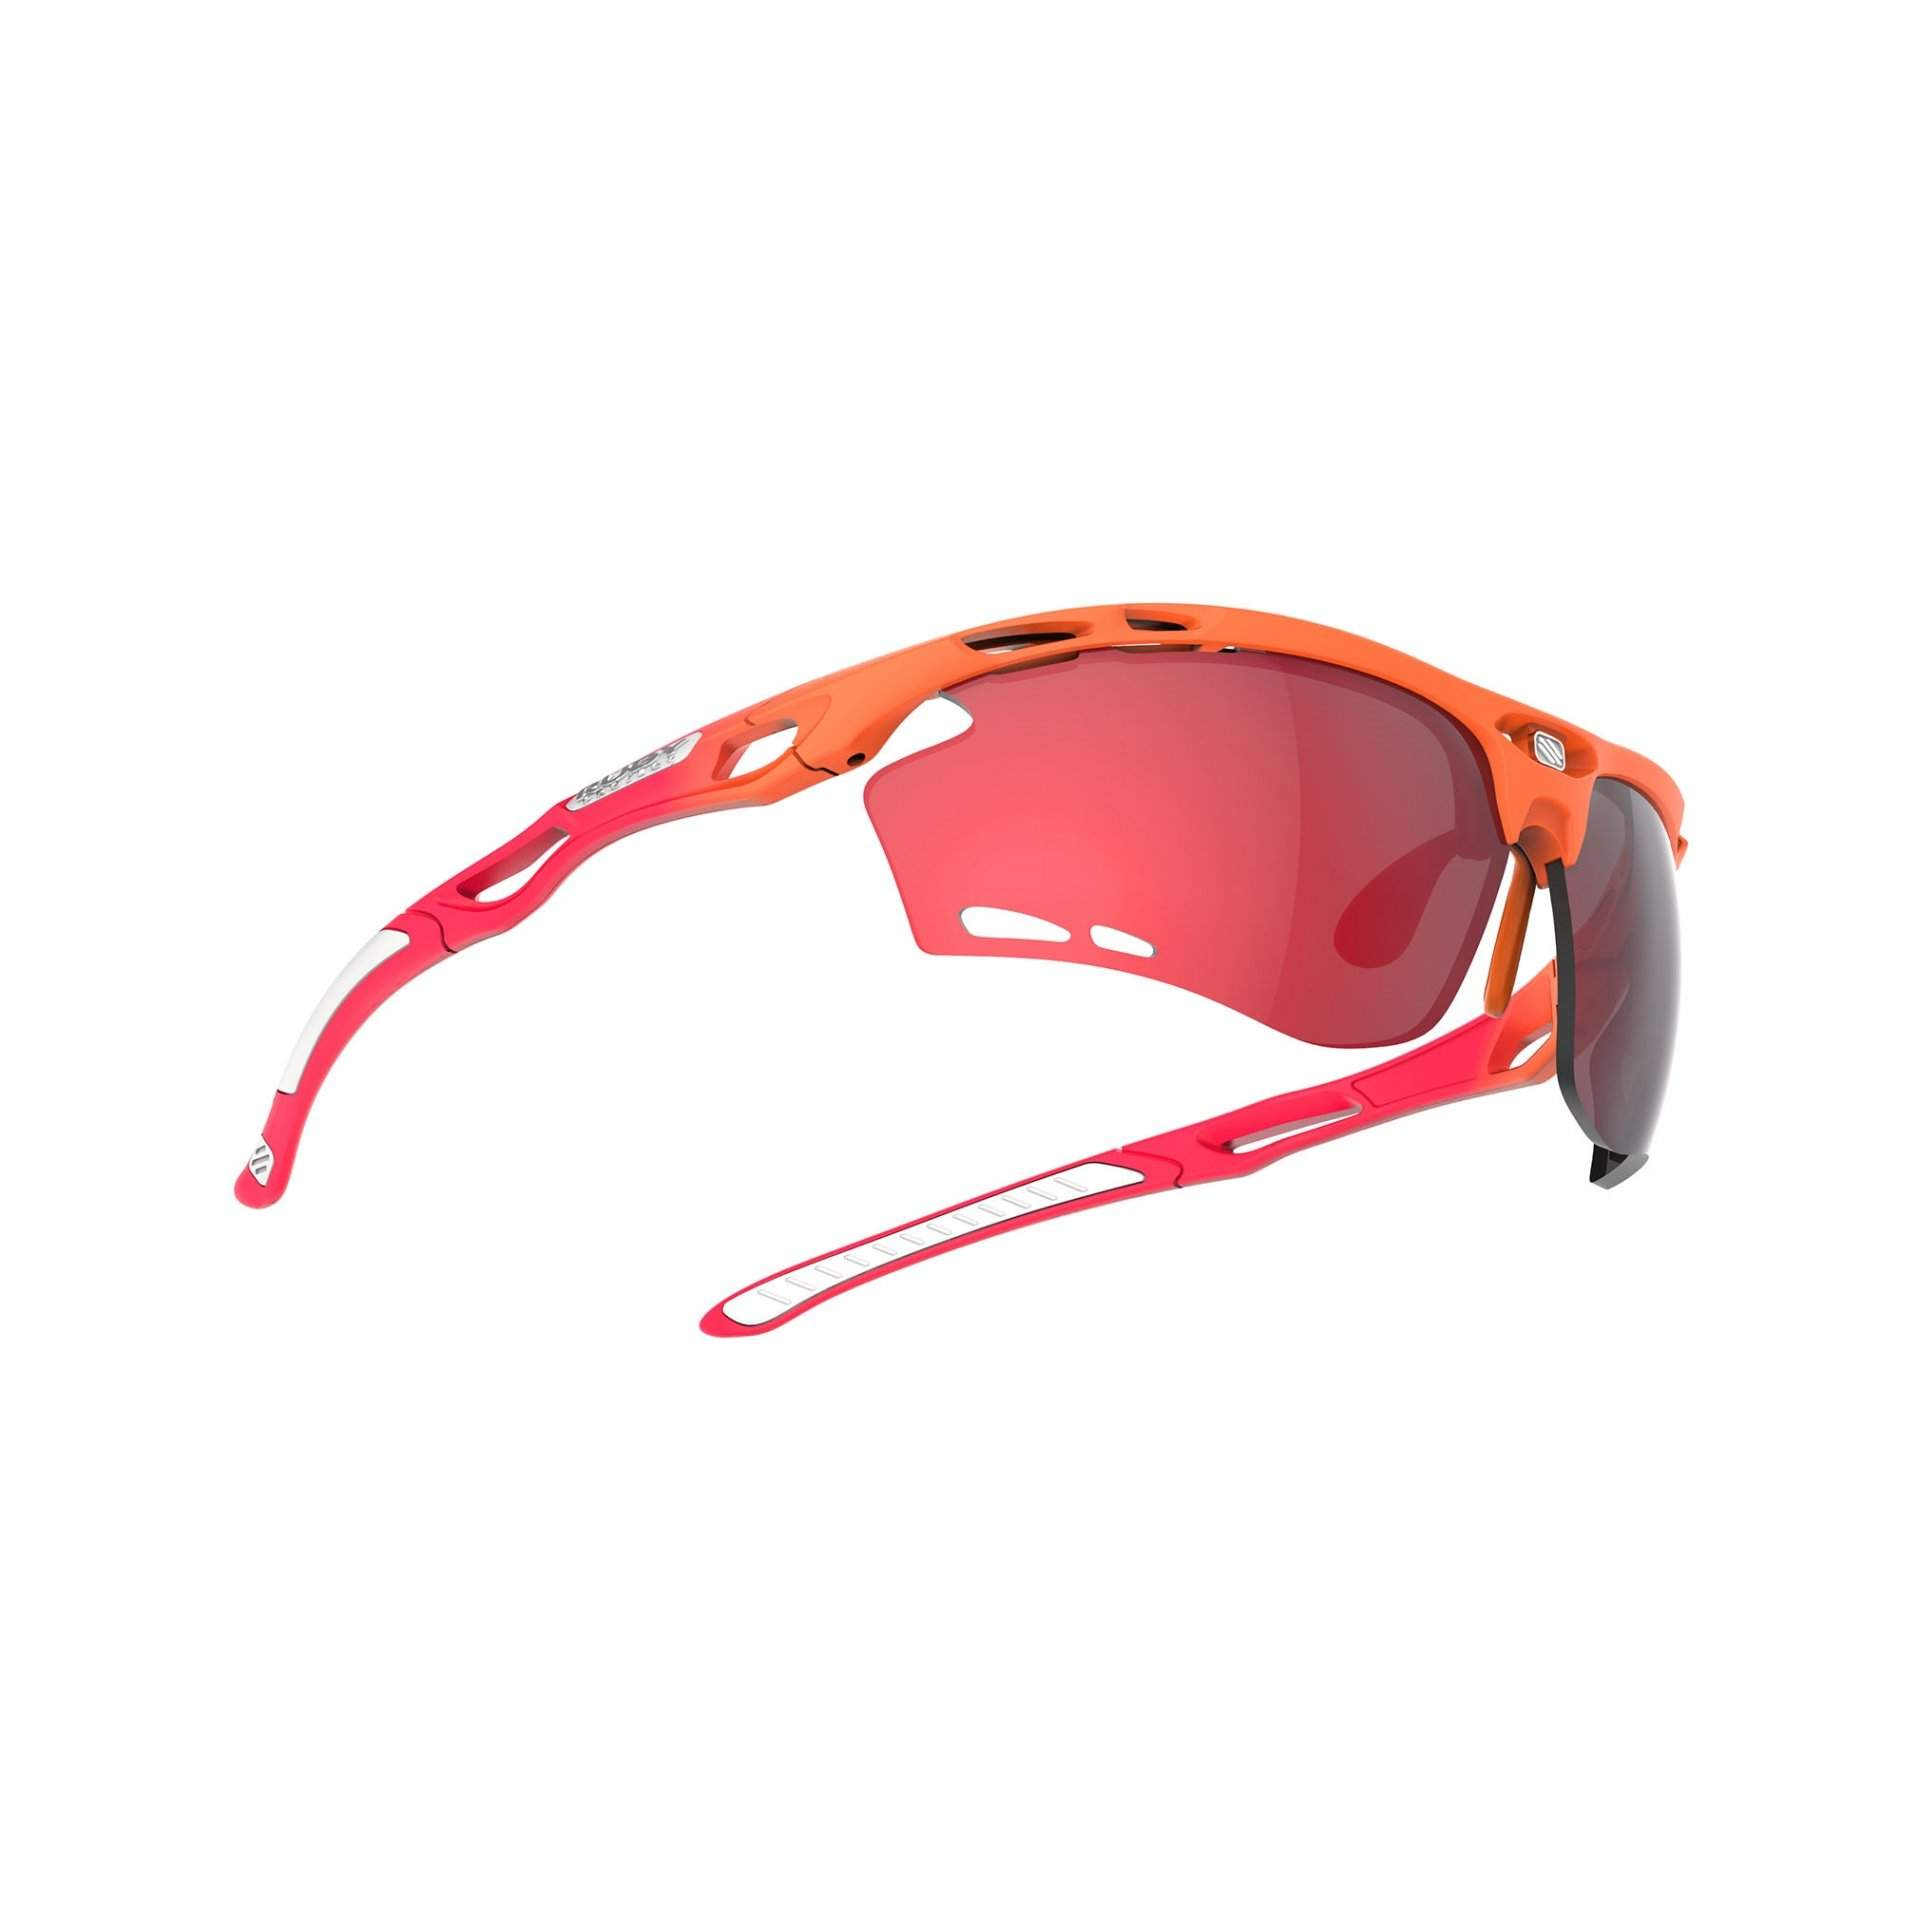 OKULARY RUDY PROJECT PROPULSE MANDARIN FADE CORAL|MULTILASER RED 3